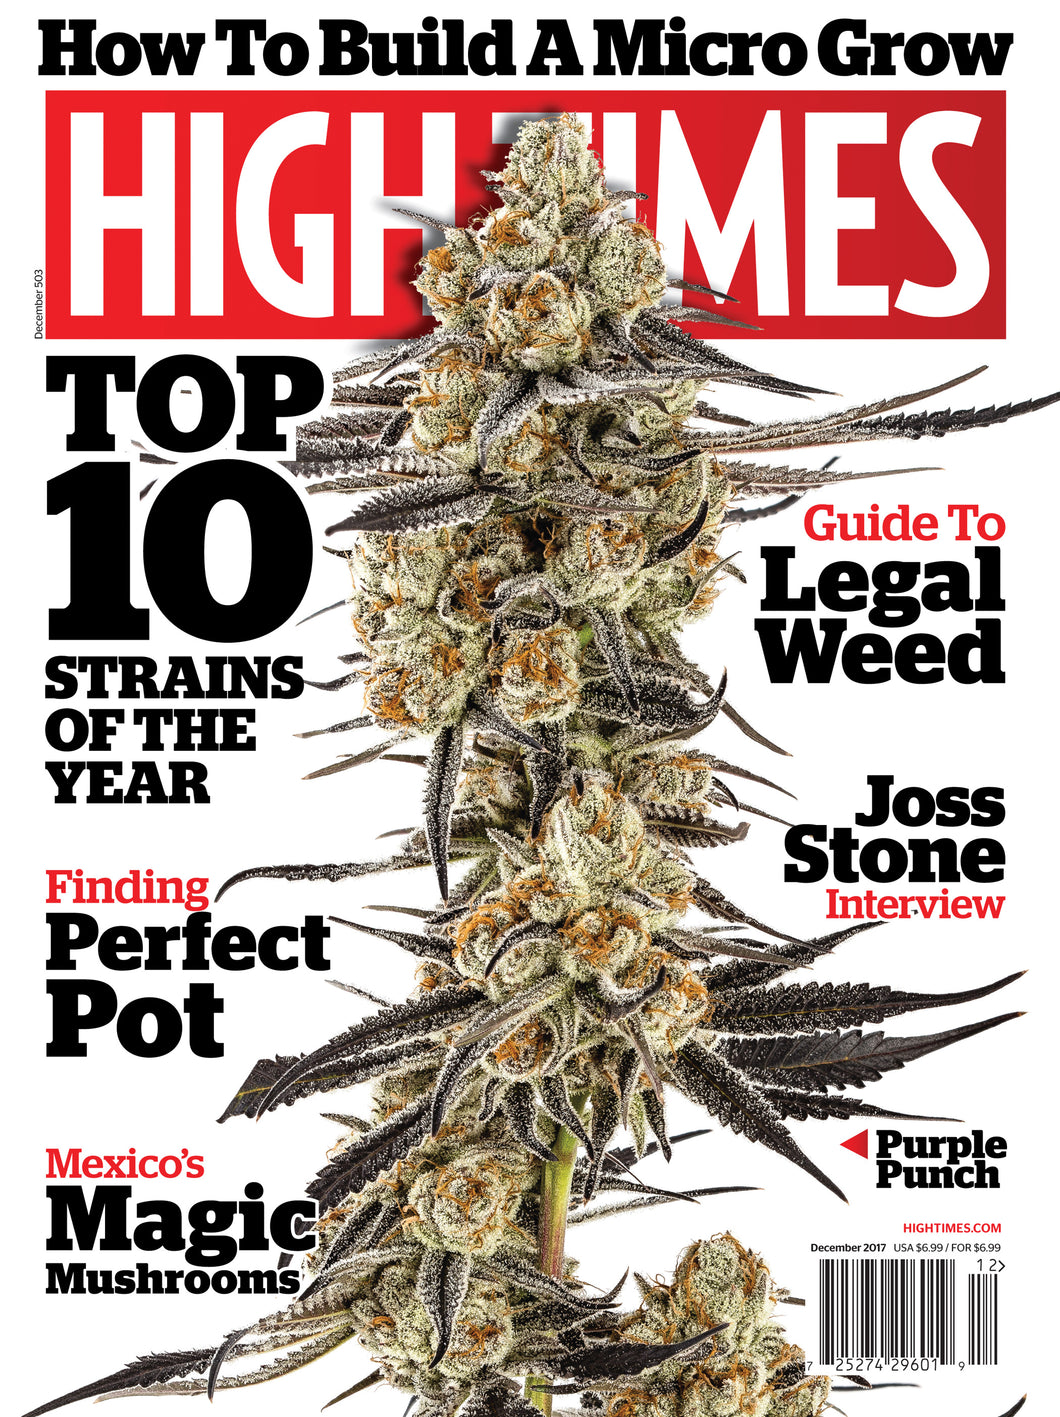 HIGH TIMES Magazine December 2017 - Issue 503